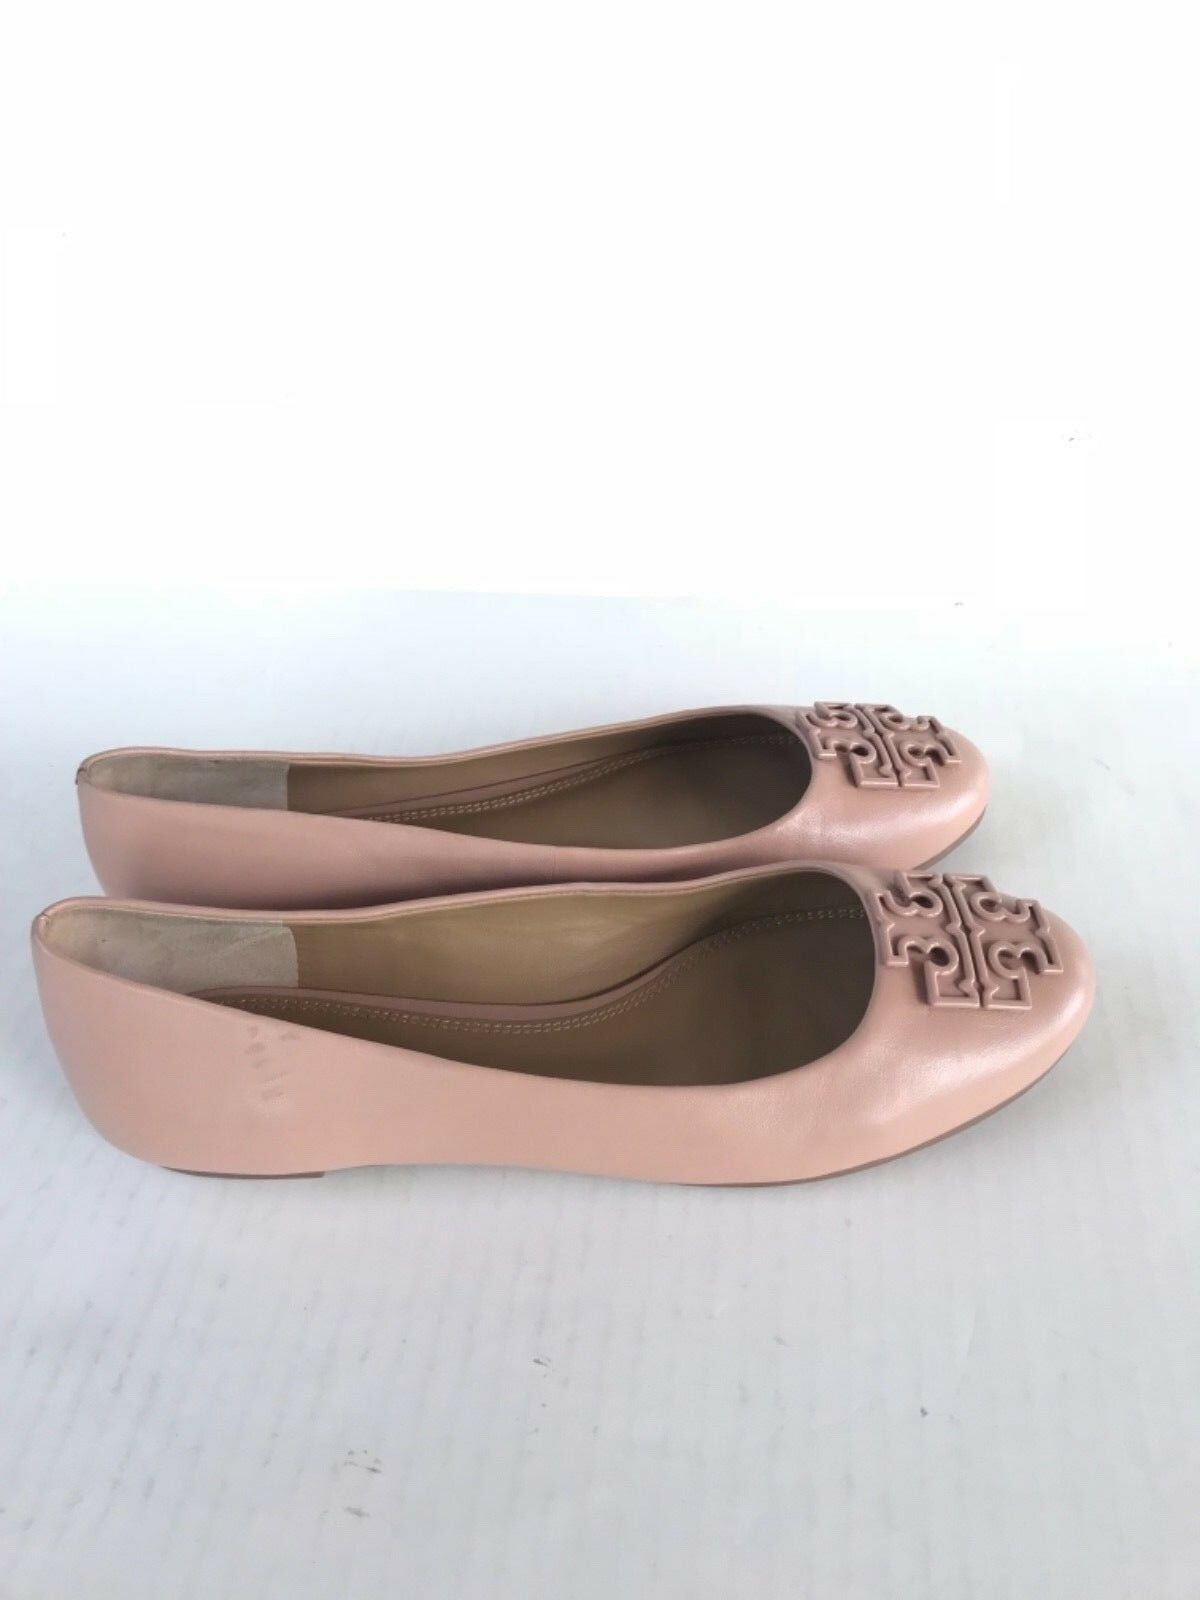 NEW TORY BURCH Melinda Flats Leather Flats Melinda Shoes Ballerina Light Beige Size 9 $258 53c778